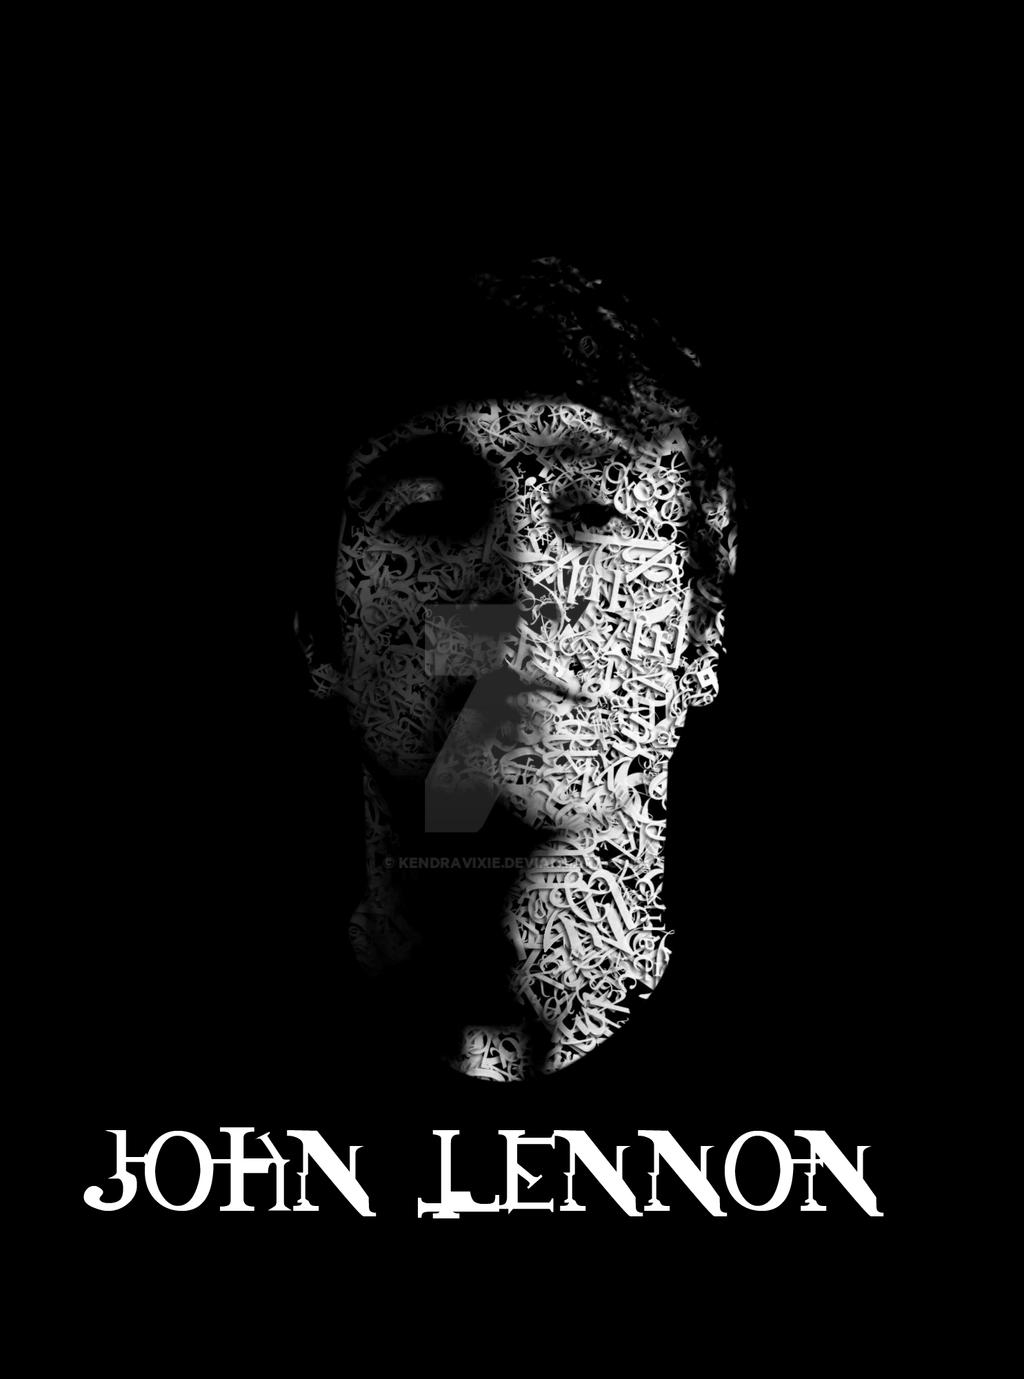 John Lennon in Typography by kendravixie